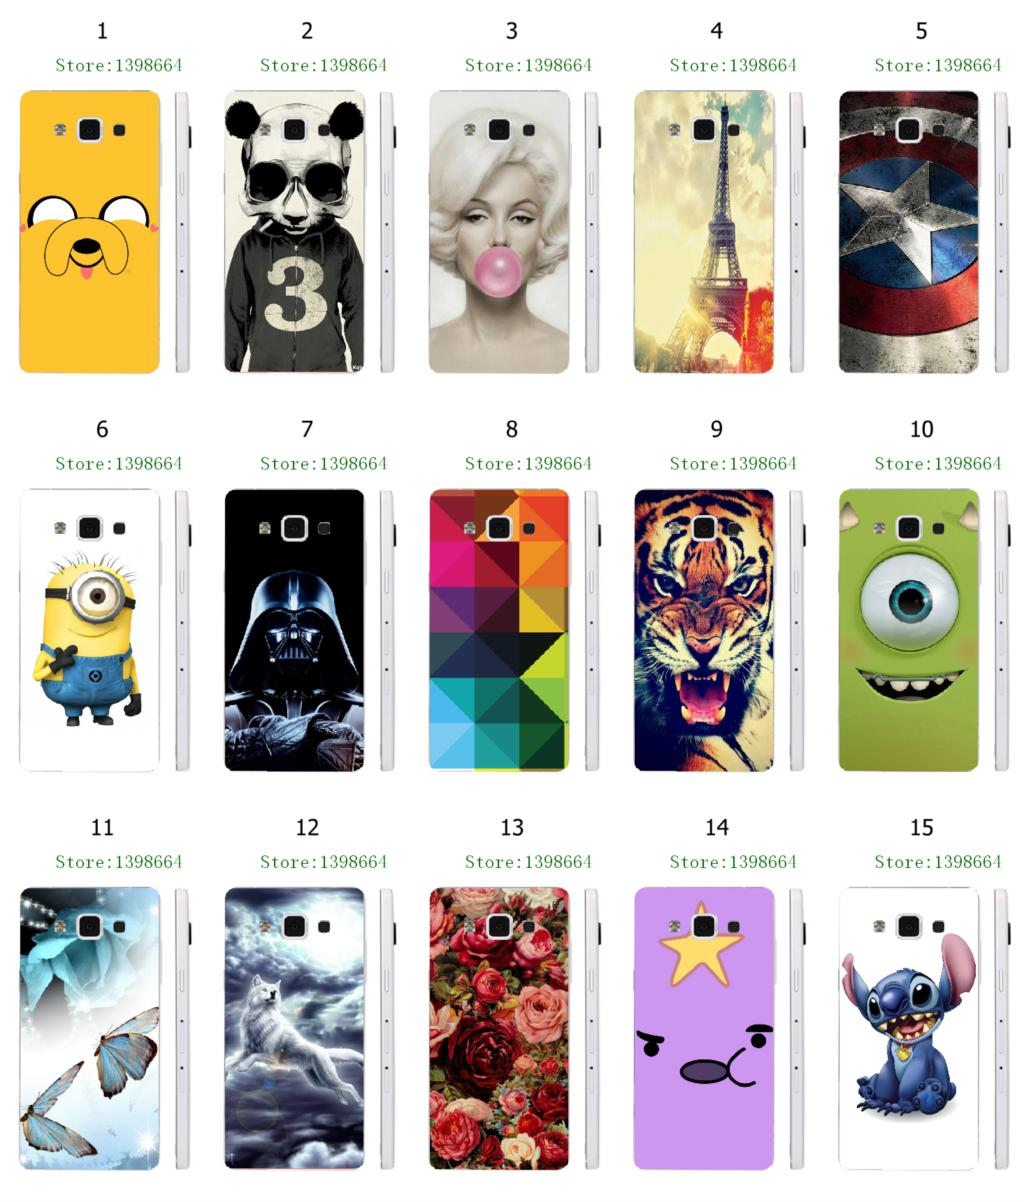 Pics photos batman logo evolution design for samsung galaxy case - Stitch Batman Tiger Star Wars Hybrid Retail 1pc 15designs New Hot Design White Hard Cases For Samsung Galaxy A5